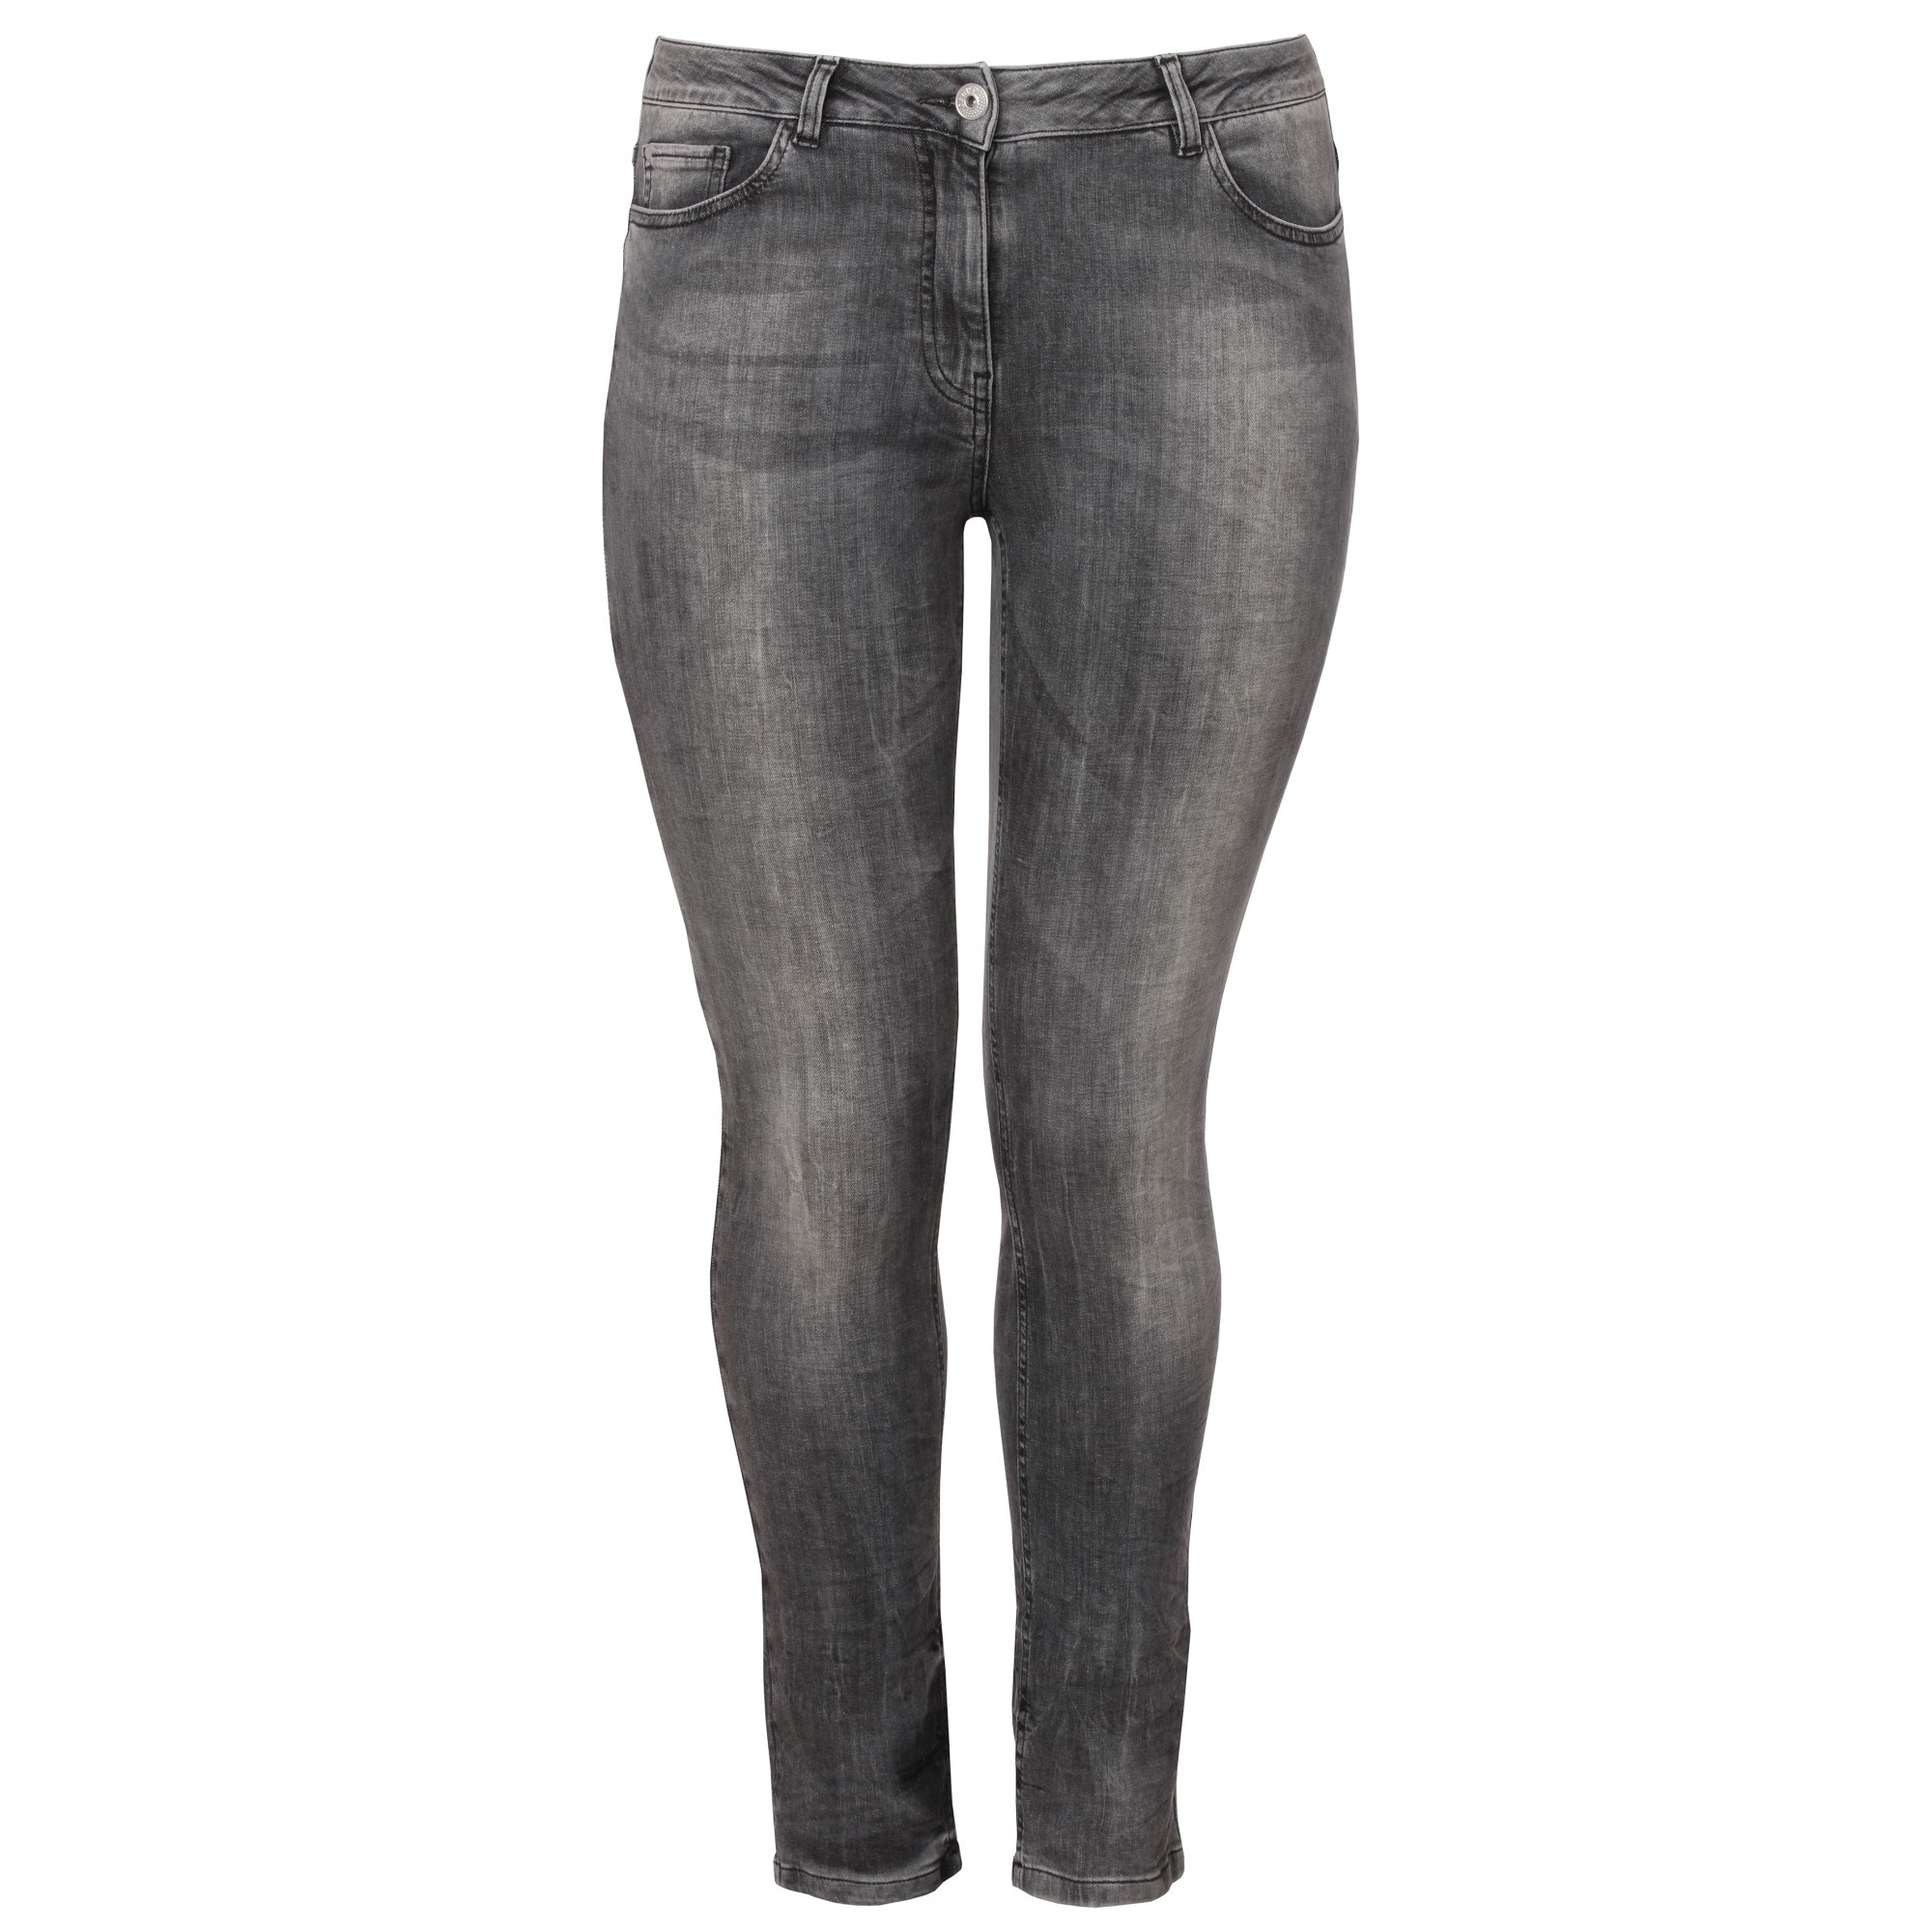 Coole Jeans mit Waschung